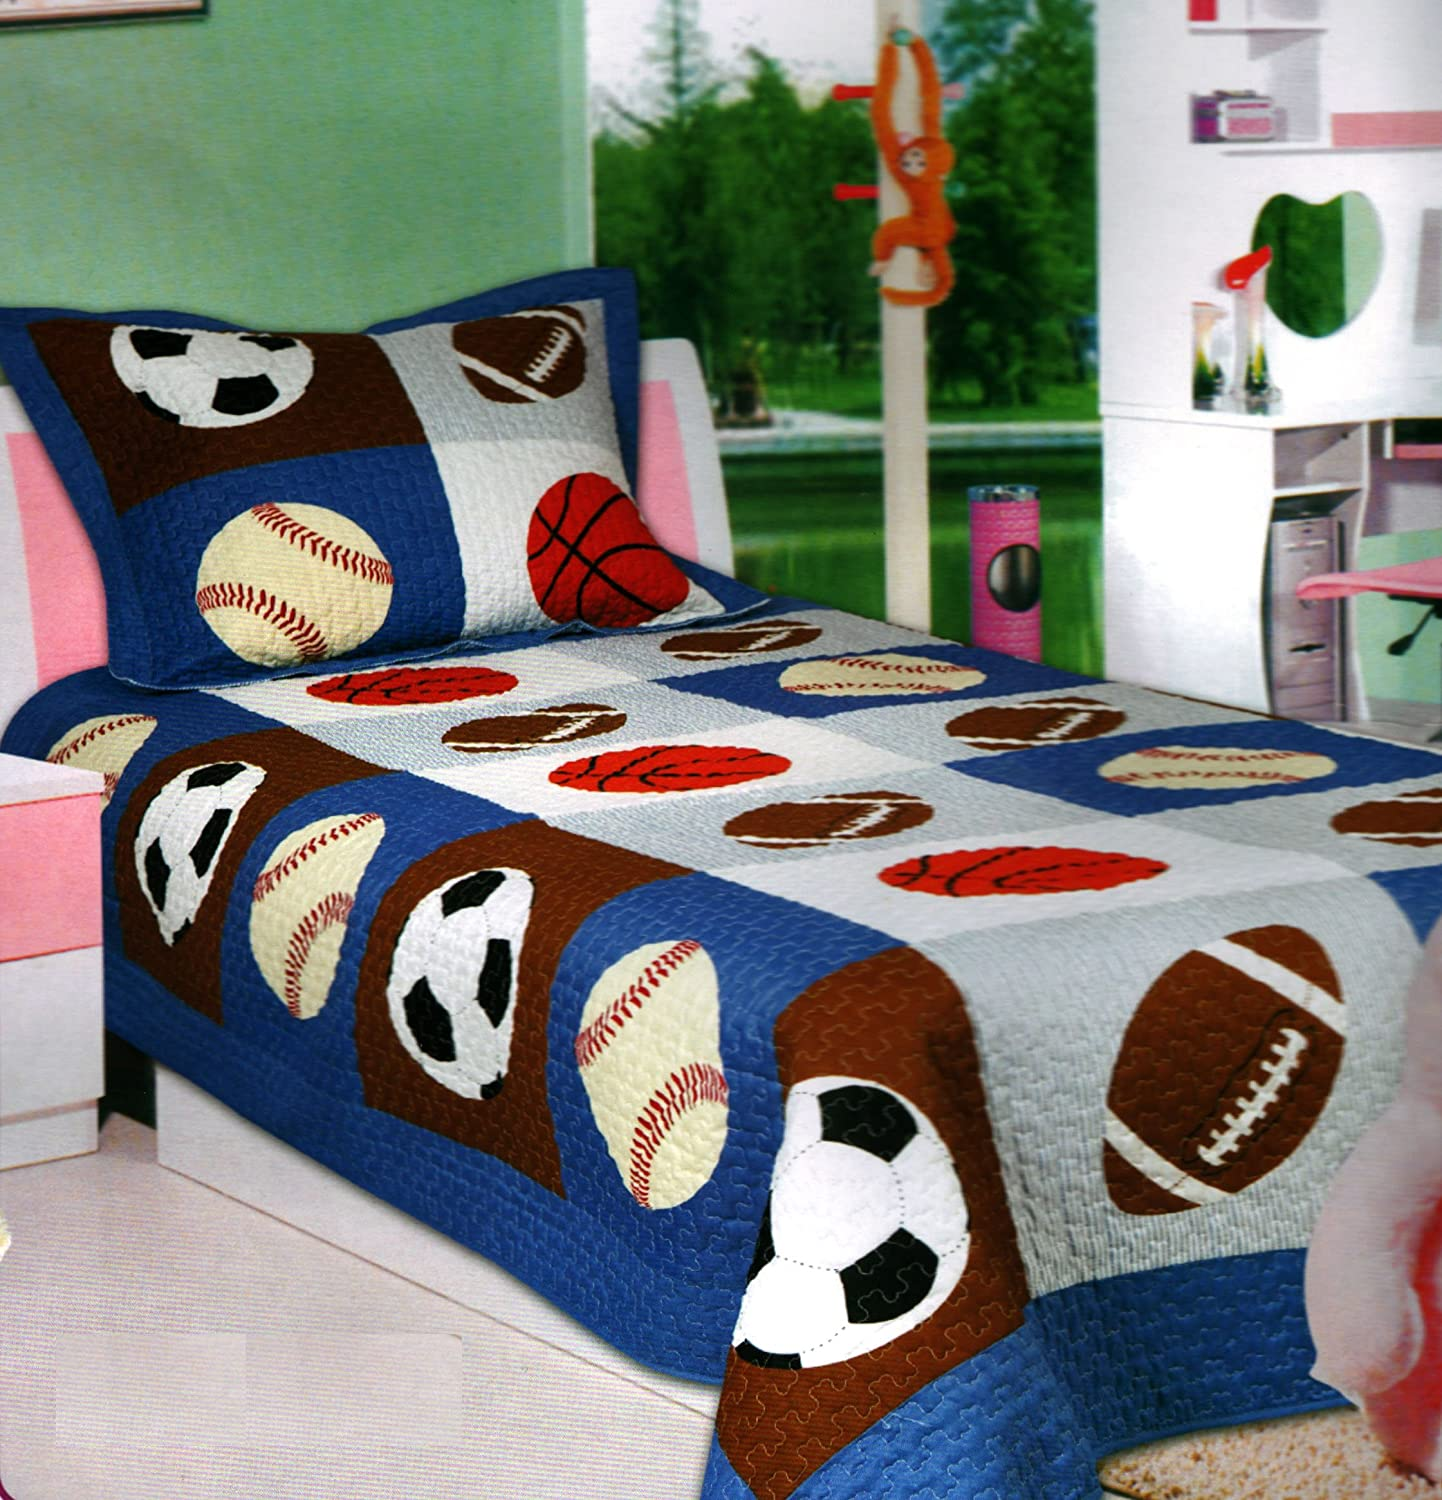 Amazoncom Mk Collection Pc Bedspread Boys Sport Football - Boys sports bedding sets twin